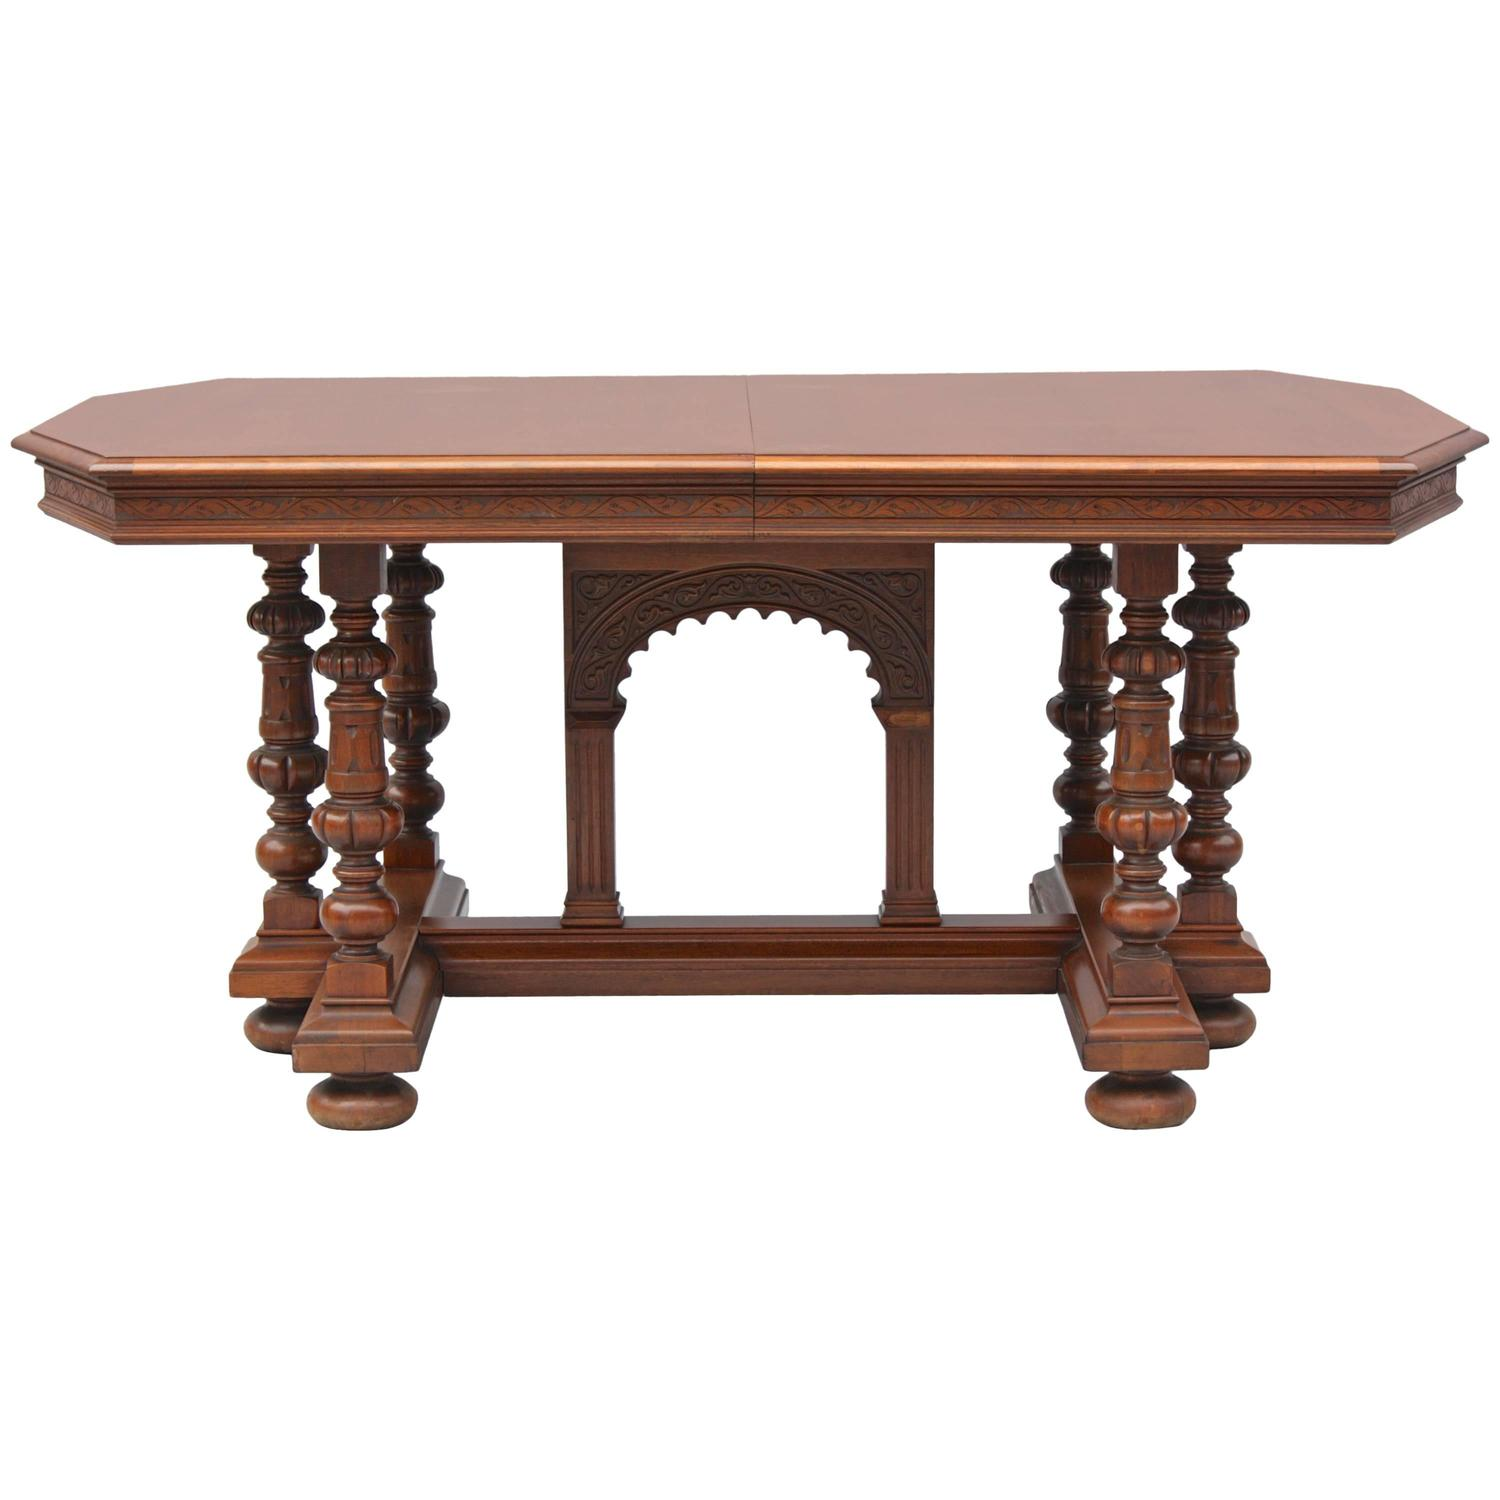 1920s spanish revival dining table with leaves for sale at for Table in spanish